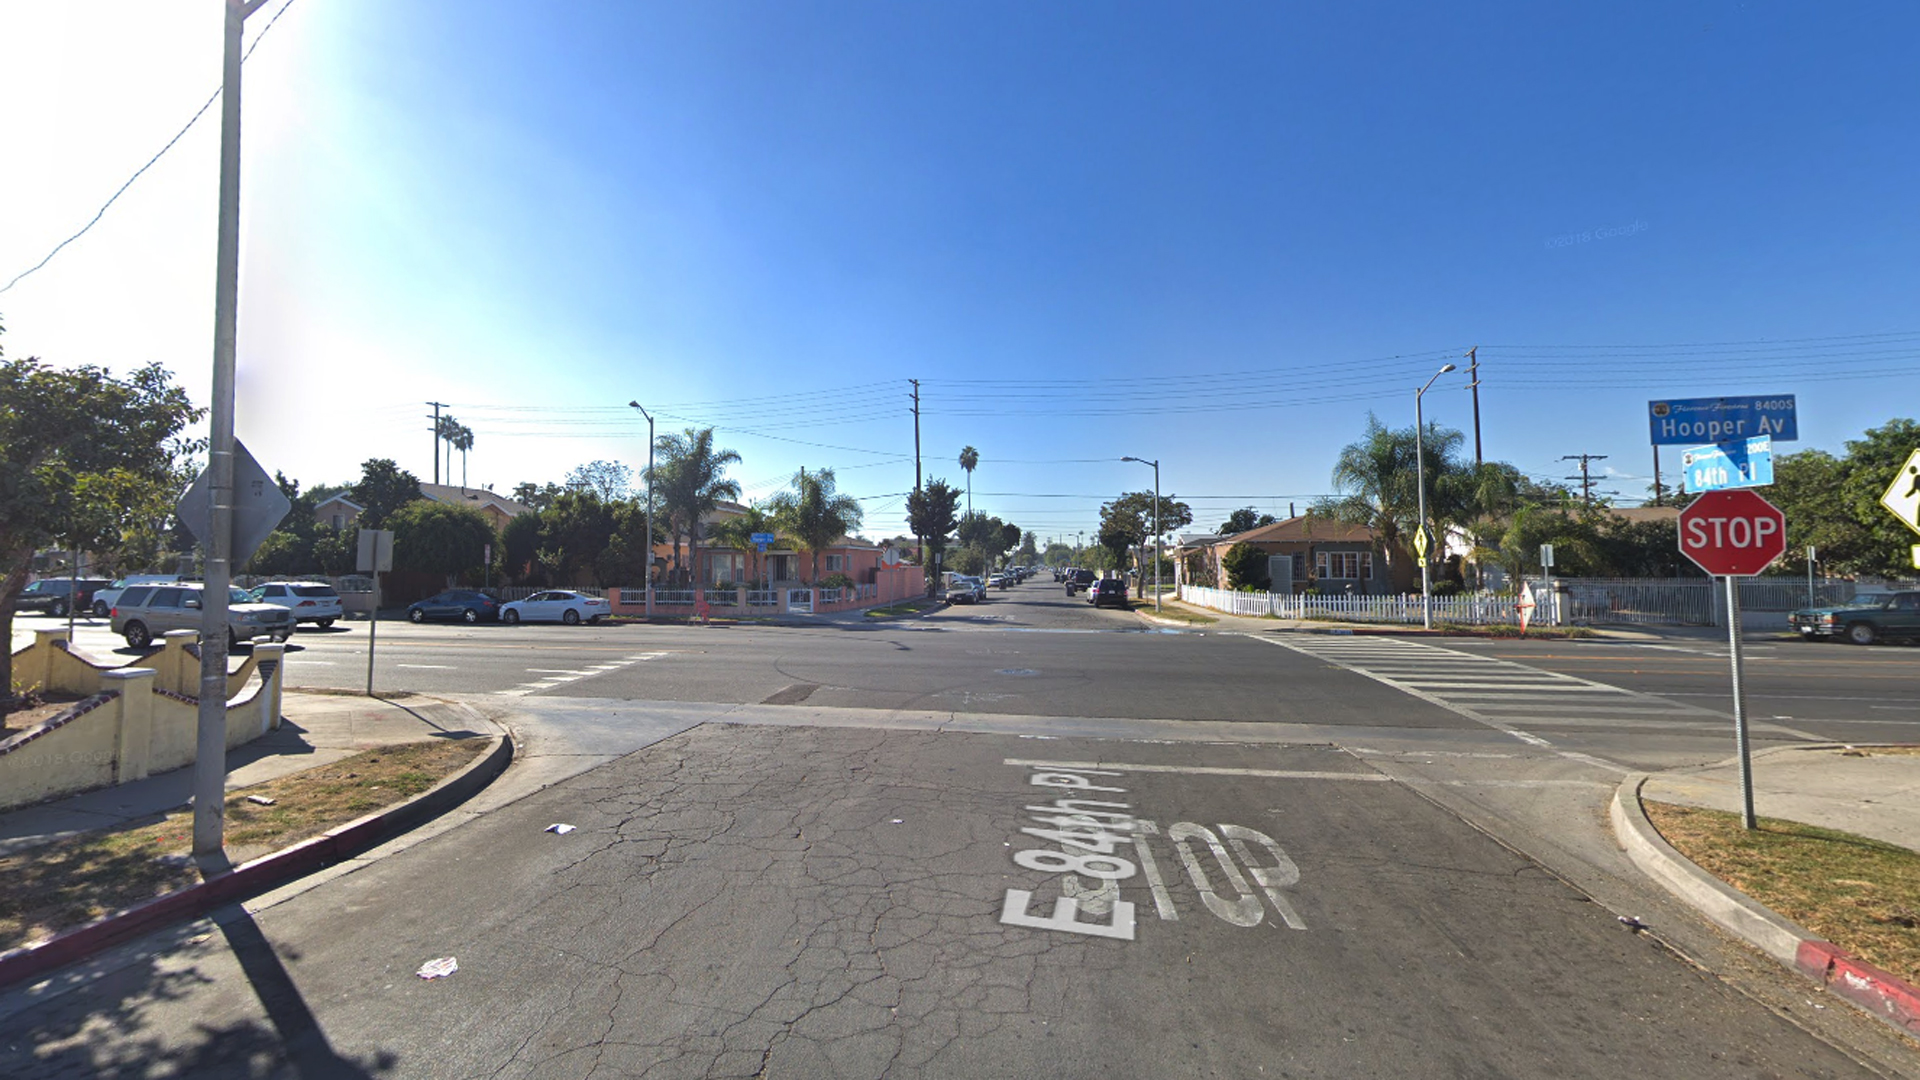 The corner of East 84th Place and South Hooper Avenue in the Florence-Firestone neighborhood of unincorporated South Los Angeles is seen in a Google Maps street view image from November 2017.